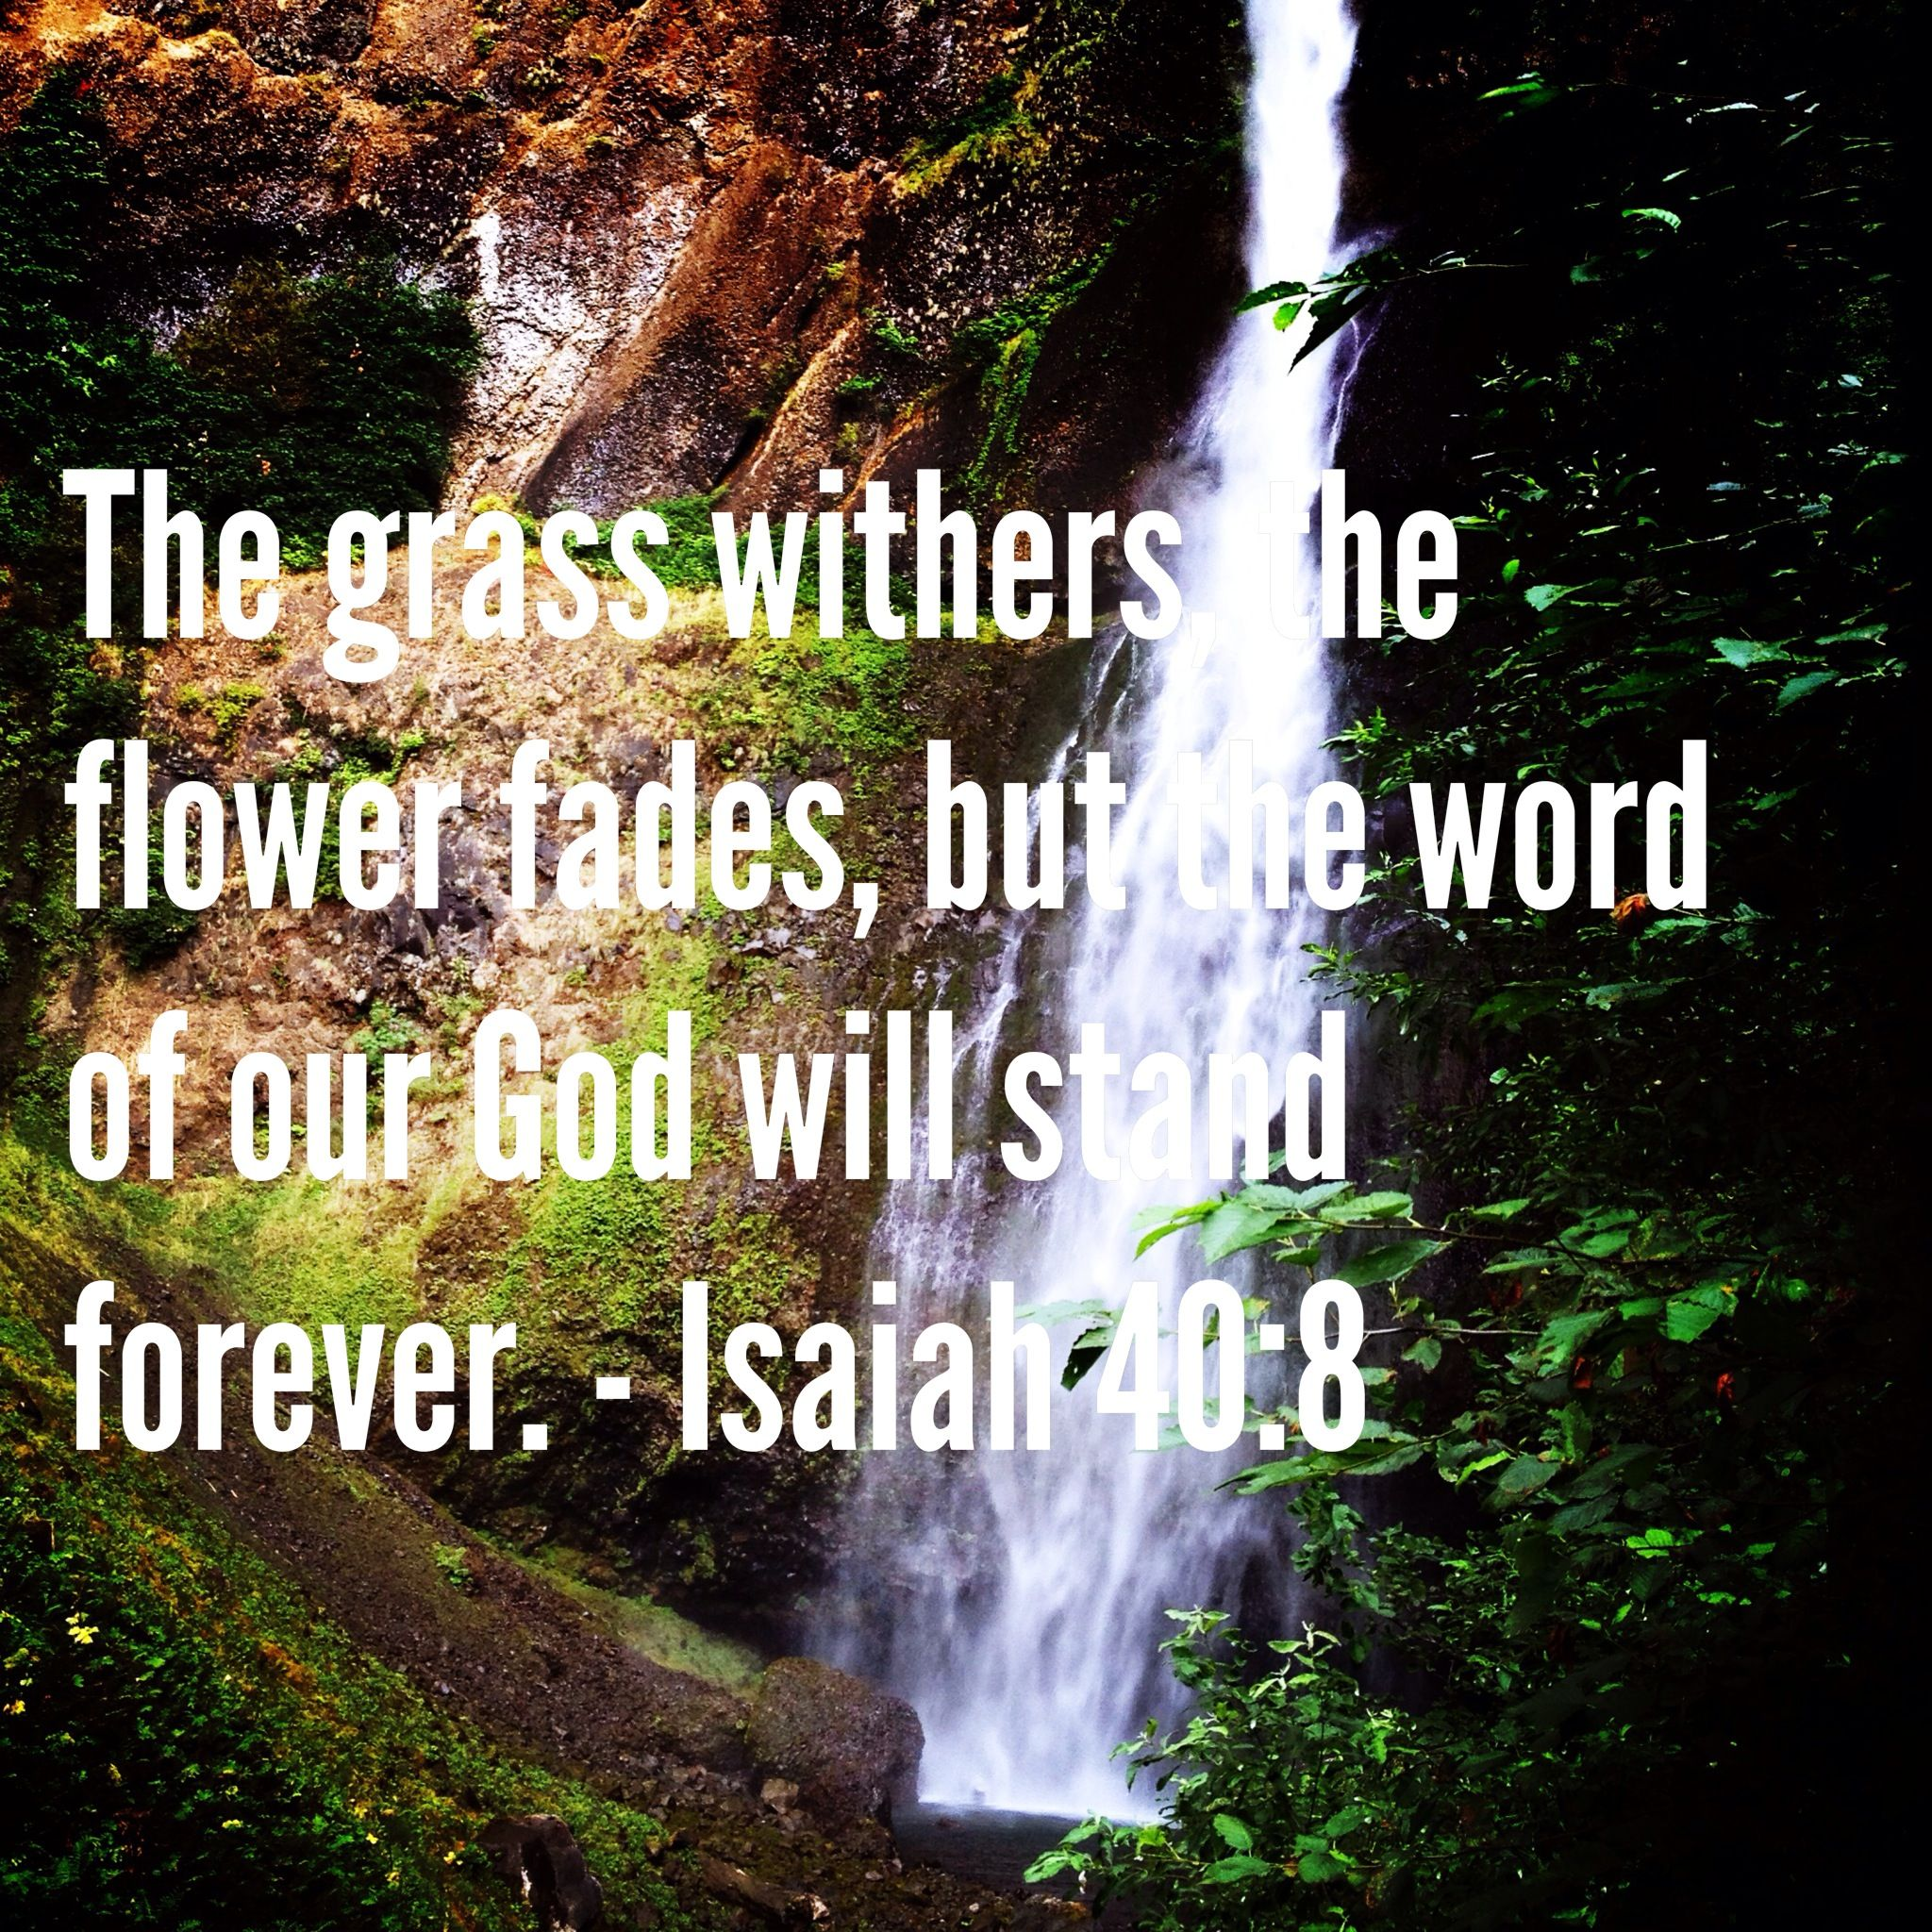 Isaiah 40 8 With Images